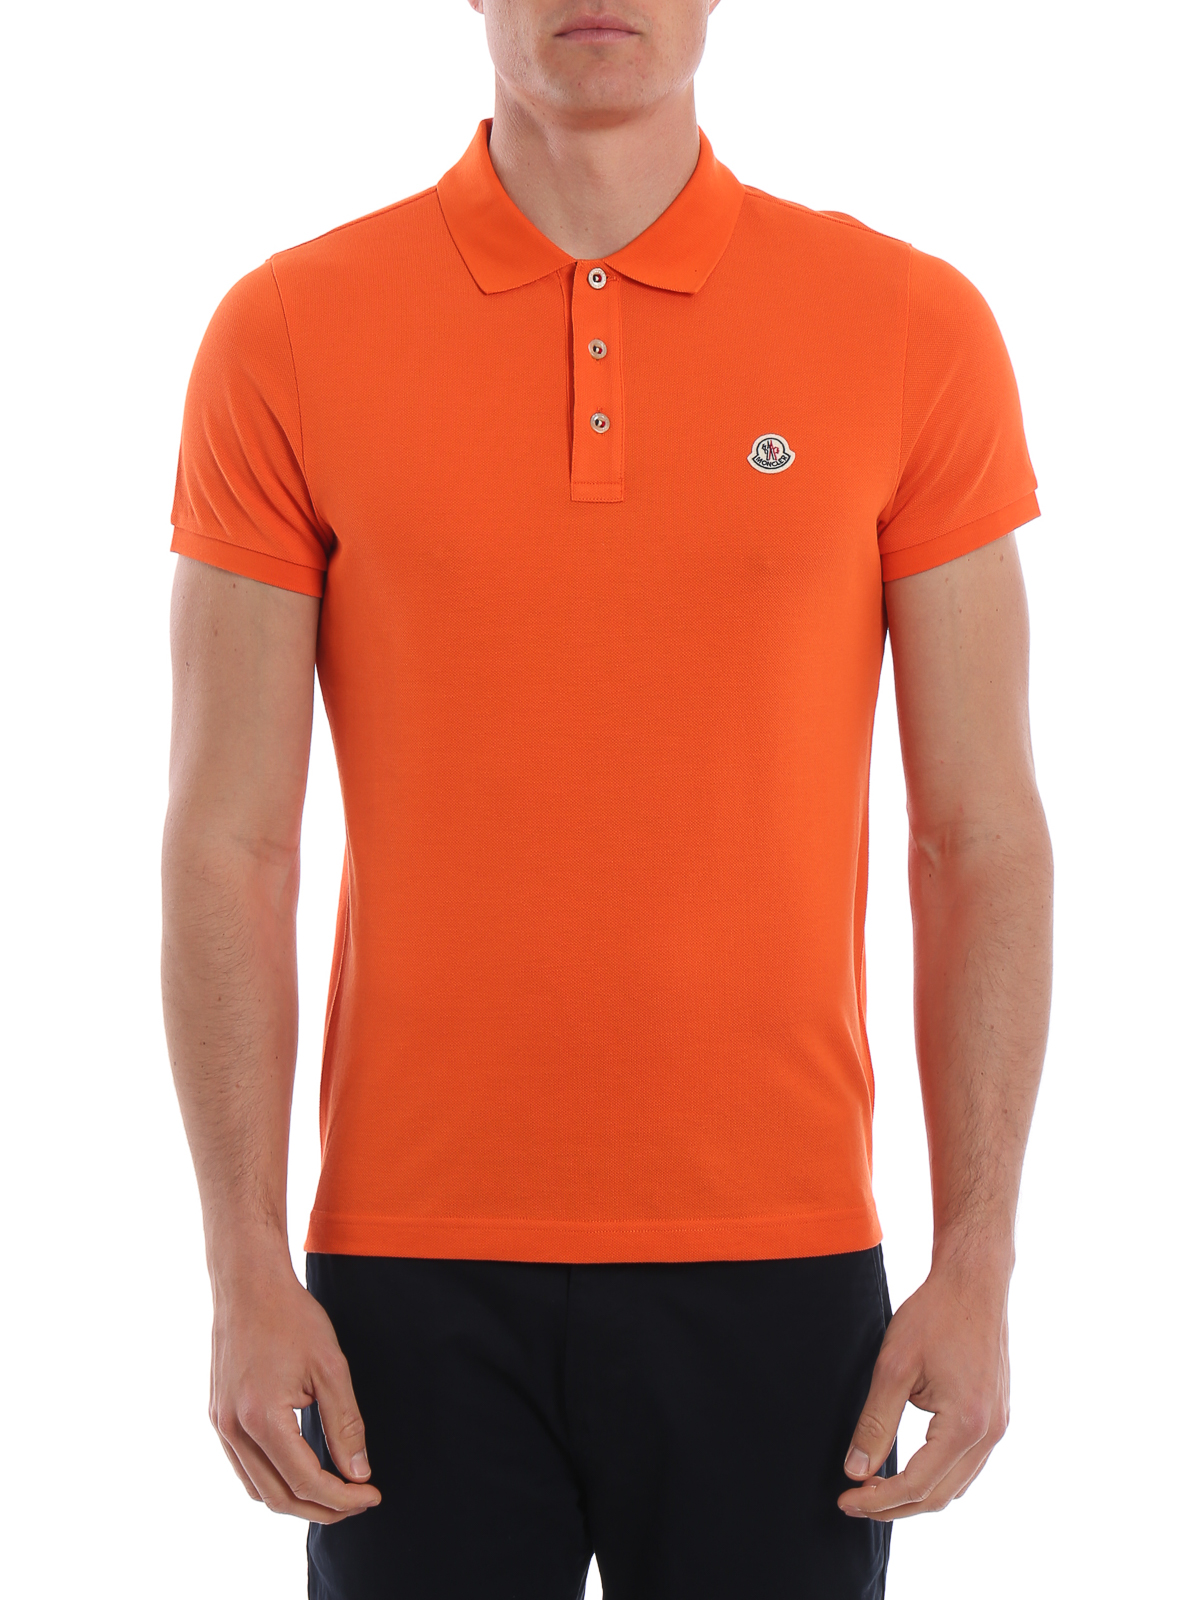 2f0dde979b21 Moncler - Orange cotton pique polo shirt - polo shirts ...